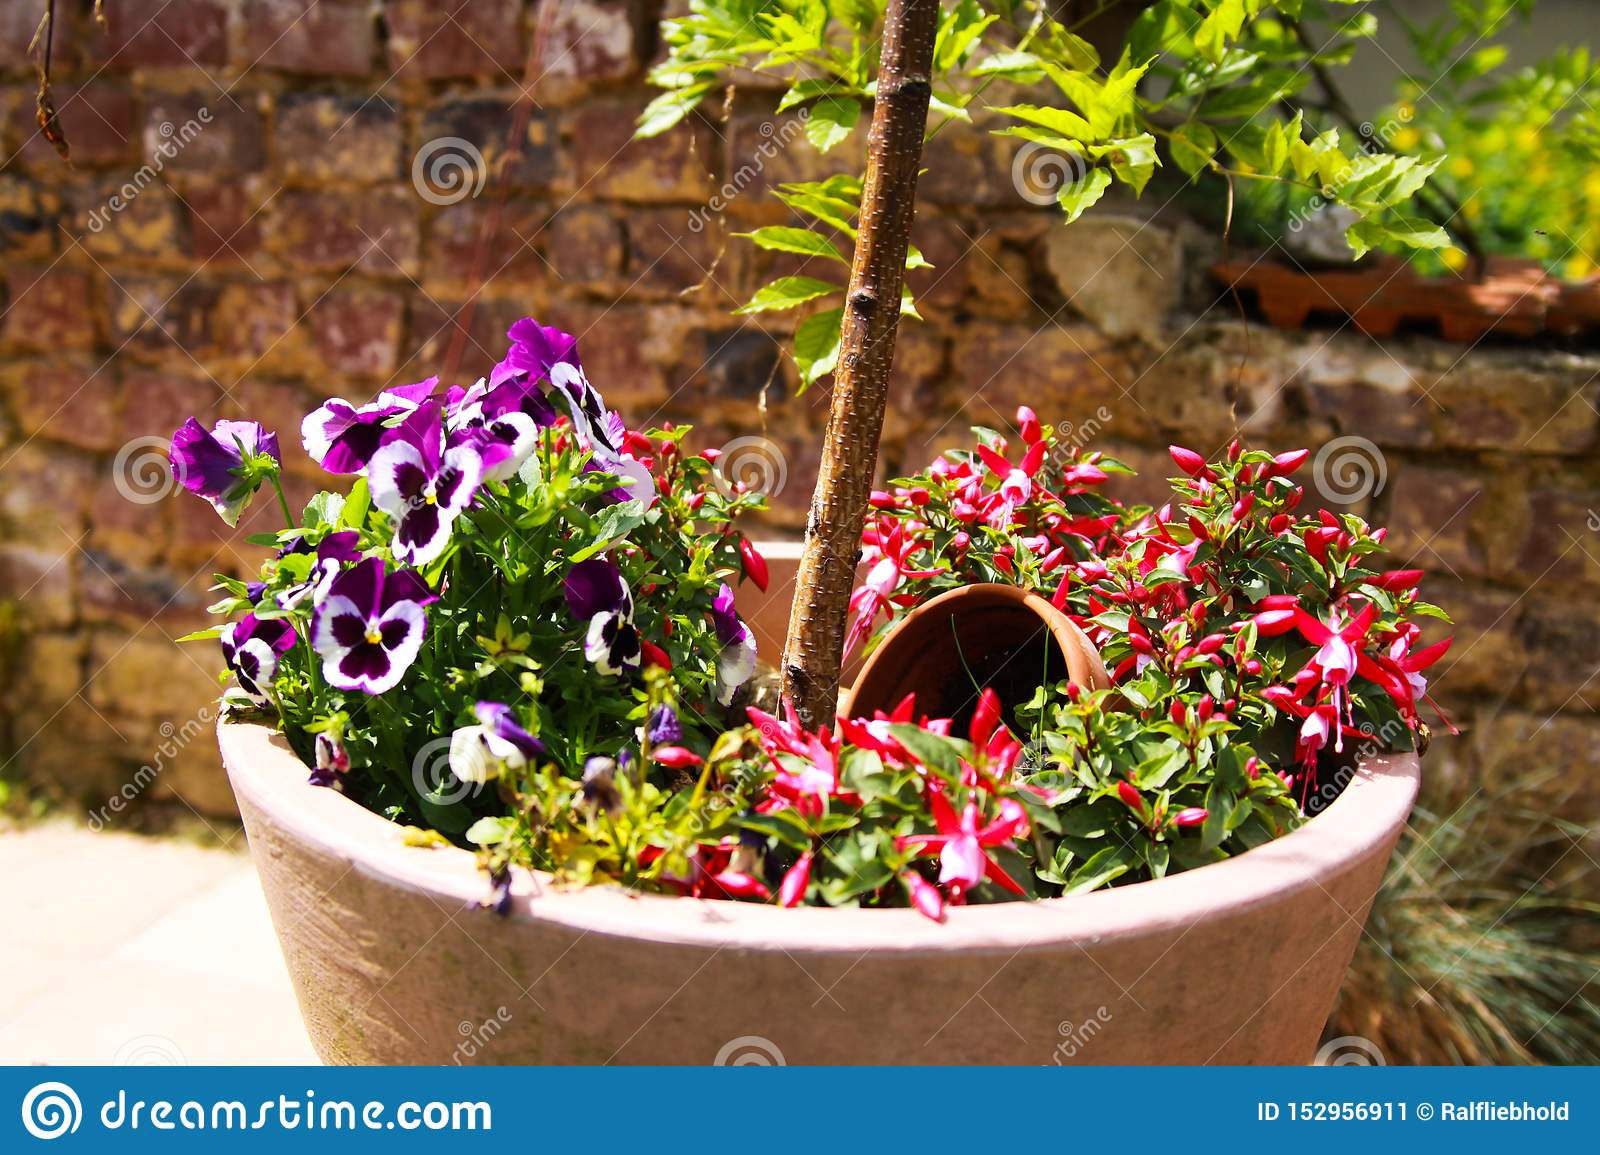 View on clay pot with small birch tree and pansies flowers on terrace of german garden with weathered old brick wall background in